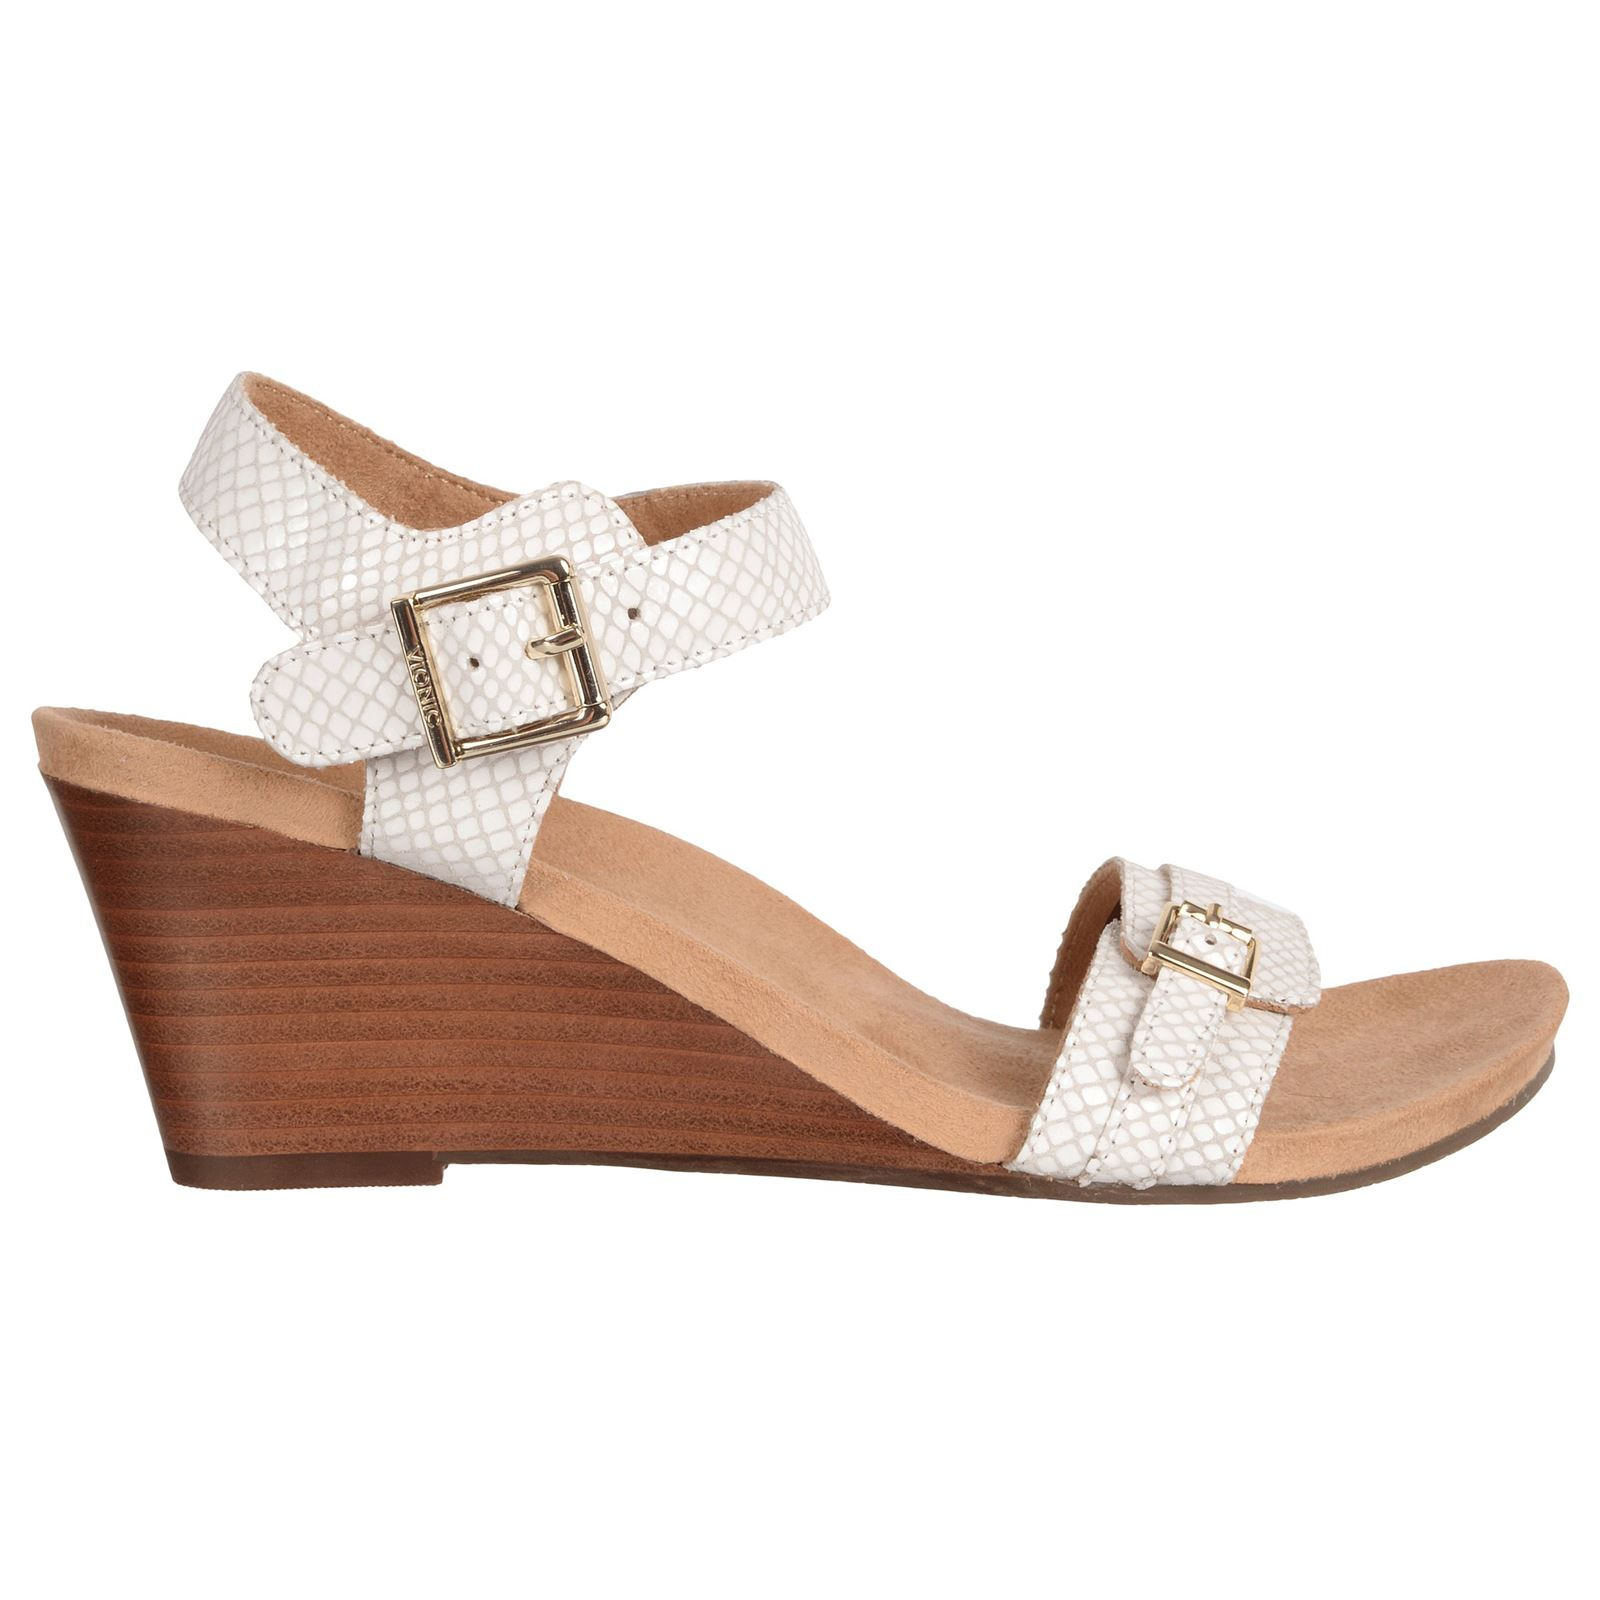 7b161250465 Details about Vionic 382 Laurie Noble White Snake Womens Wedge Open Toe  Sandals New